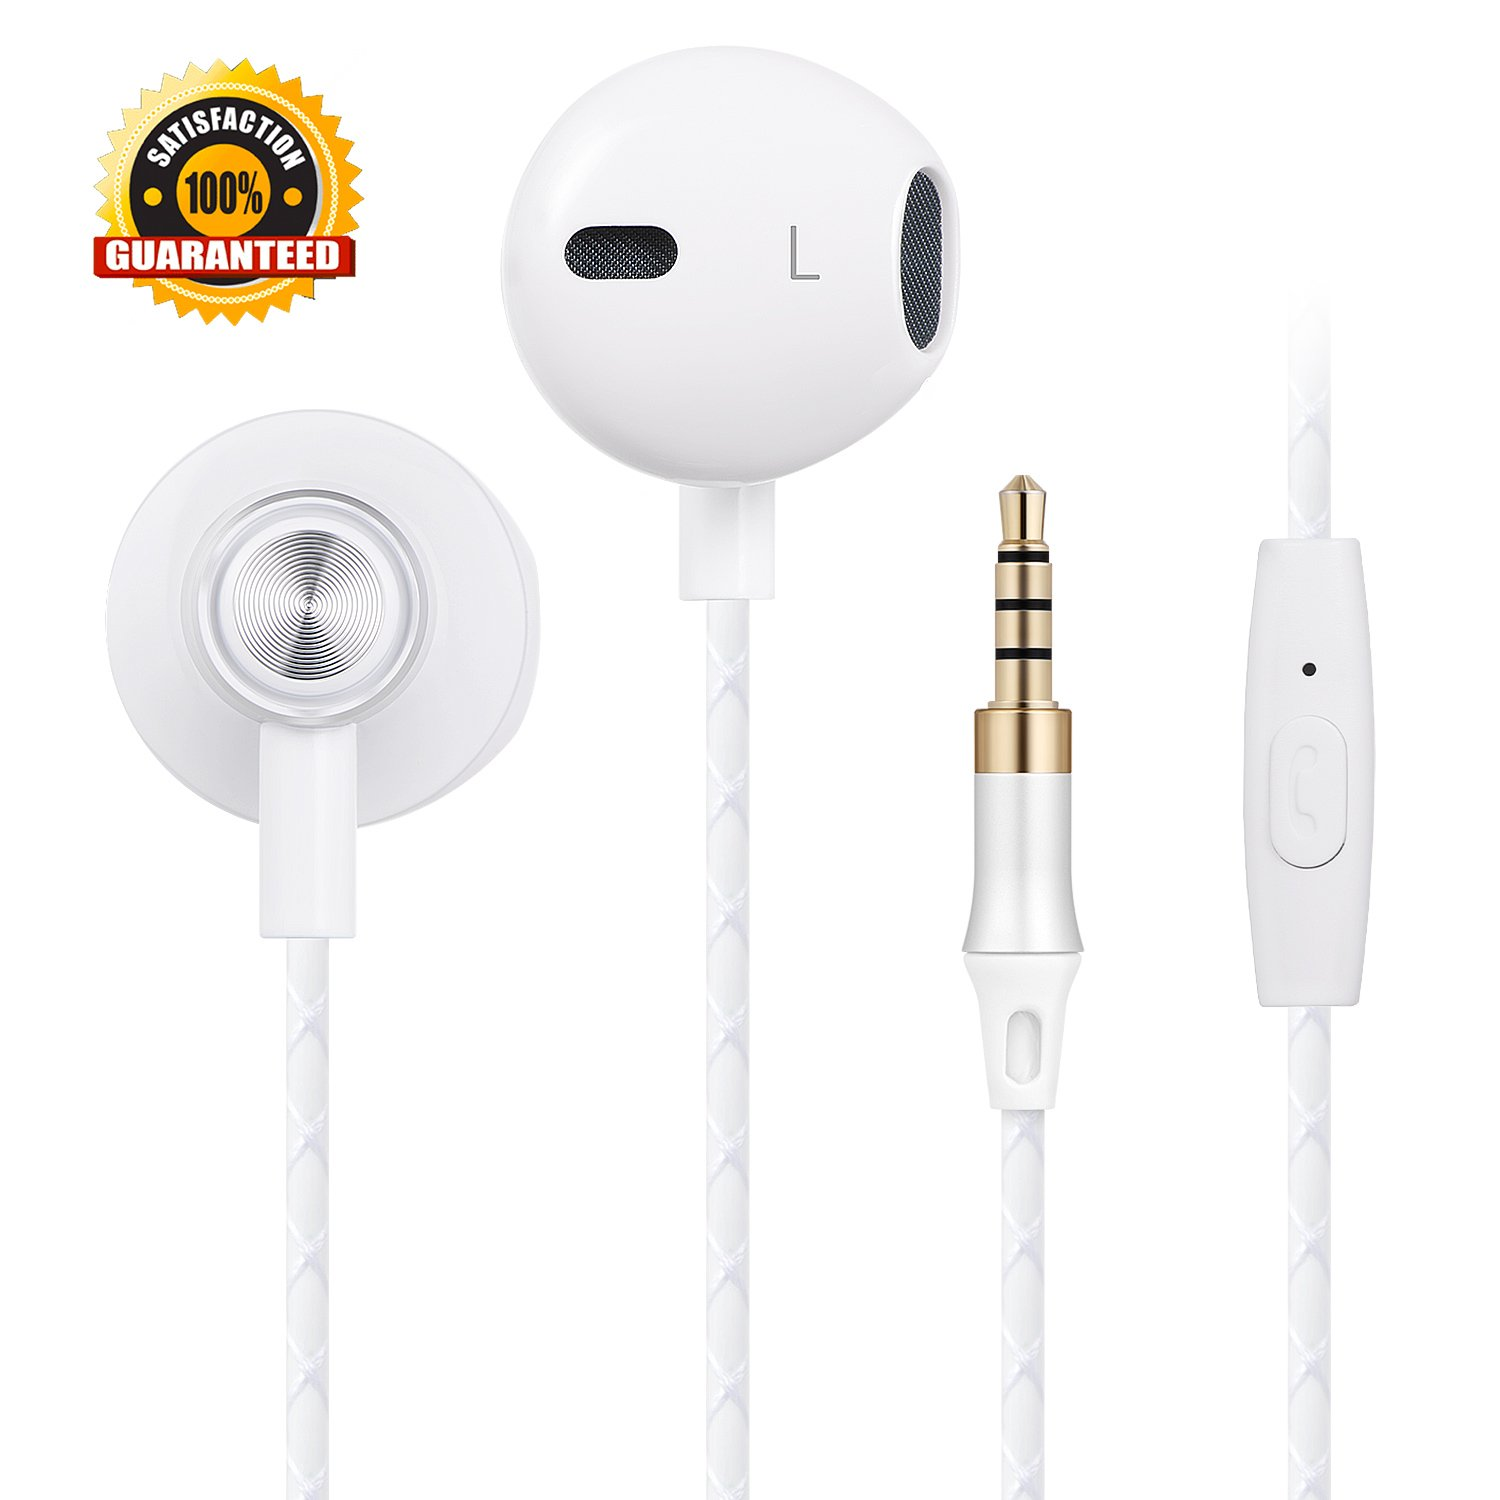 Headphones Earbuds Stereo in-Ear Earphones Noise Isolating with Remote and Mic Wired Earbuds MP3 Players Compatible with 3.3mm Jack Smart-Phones, Tablets and More